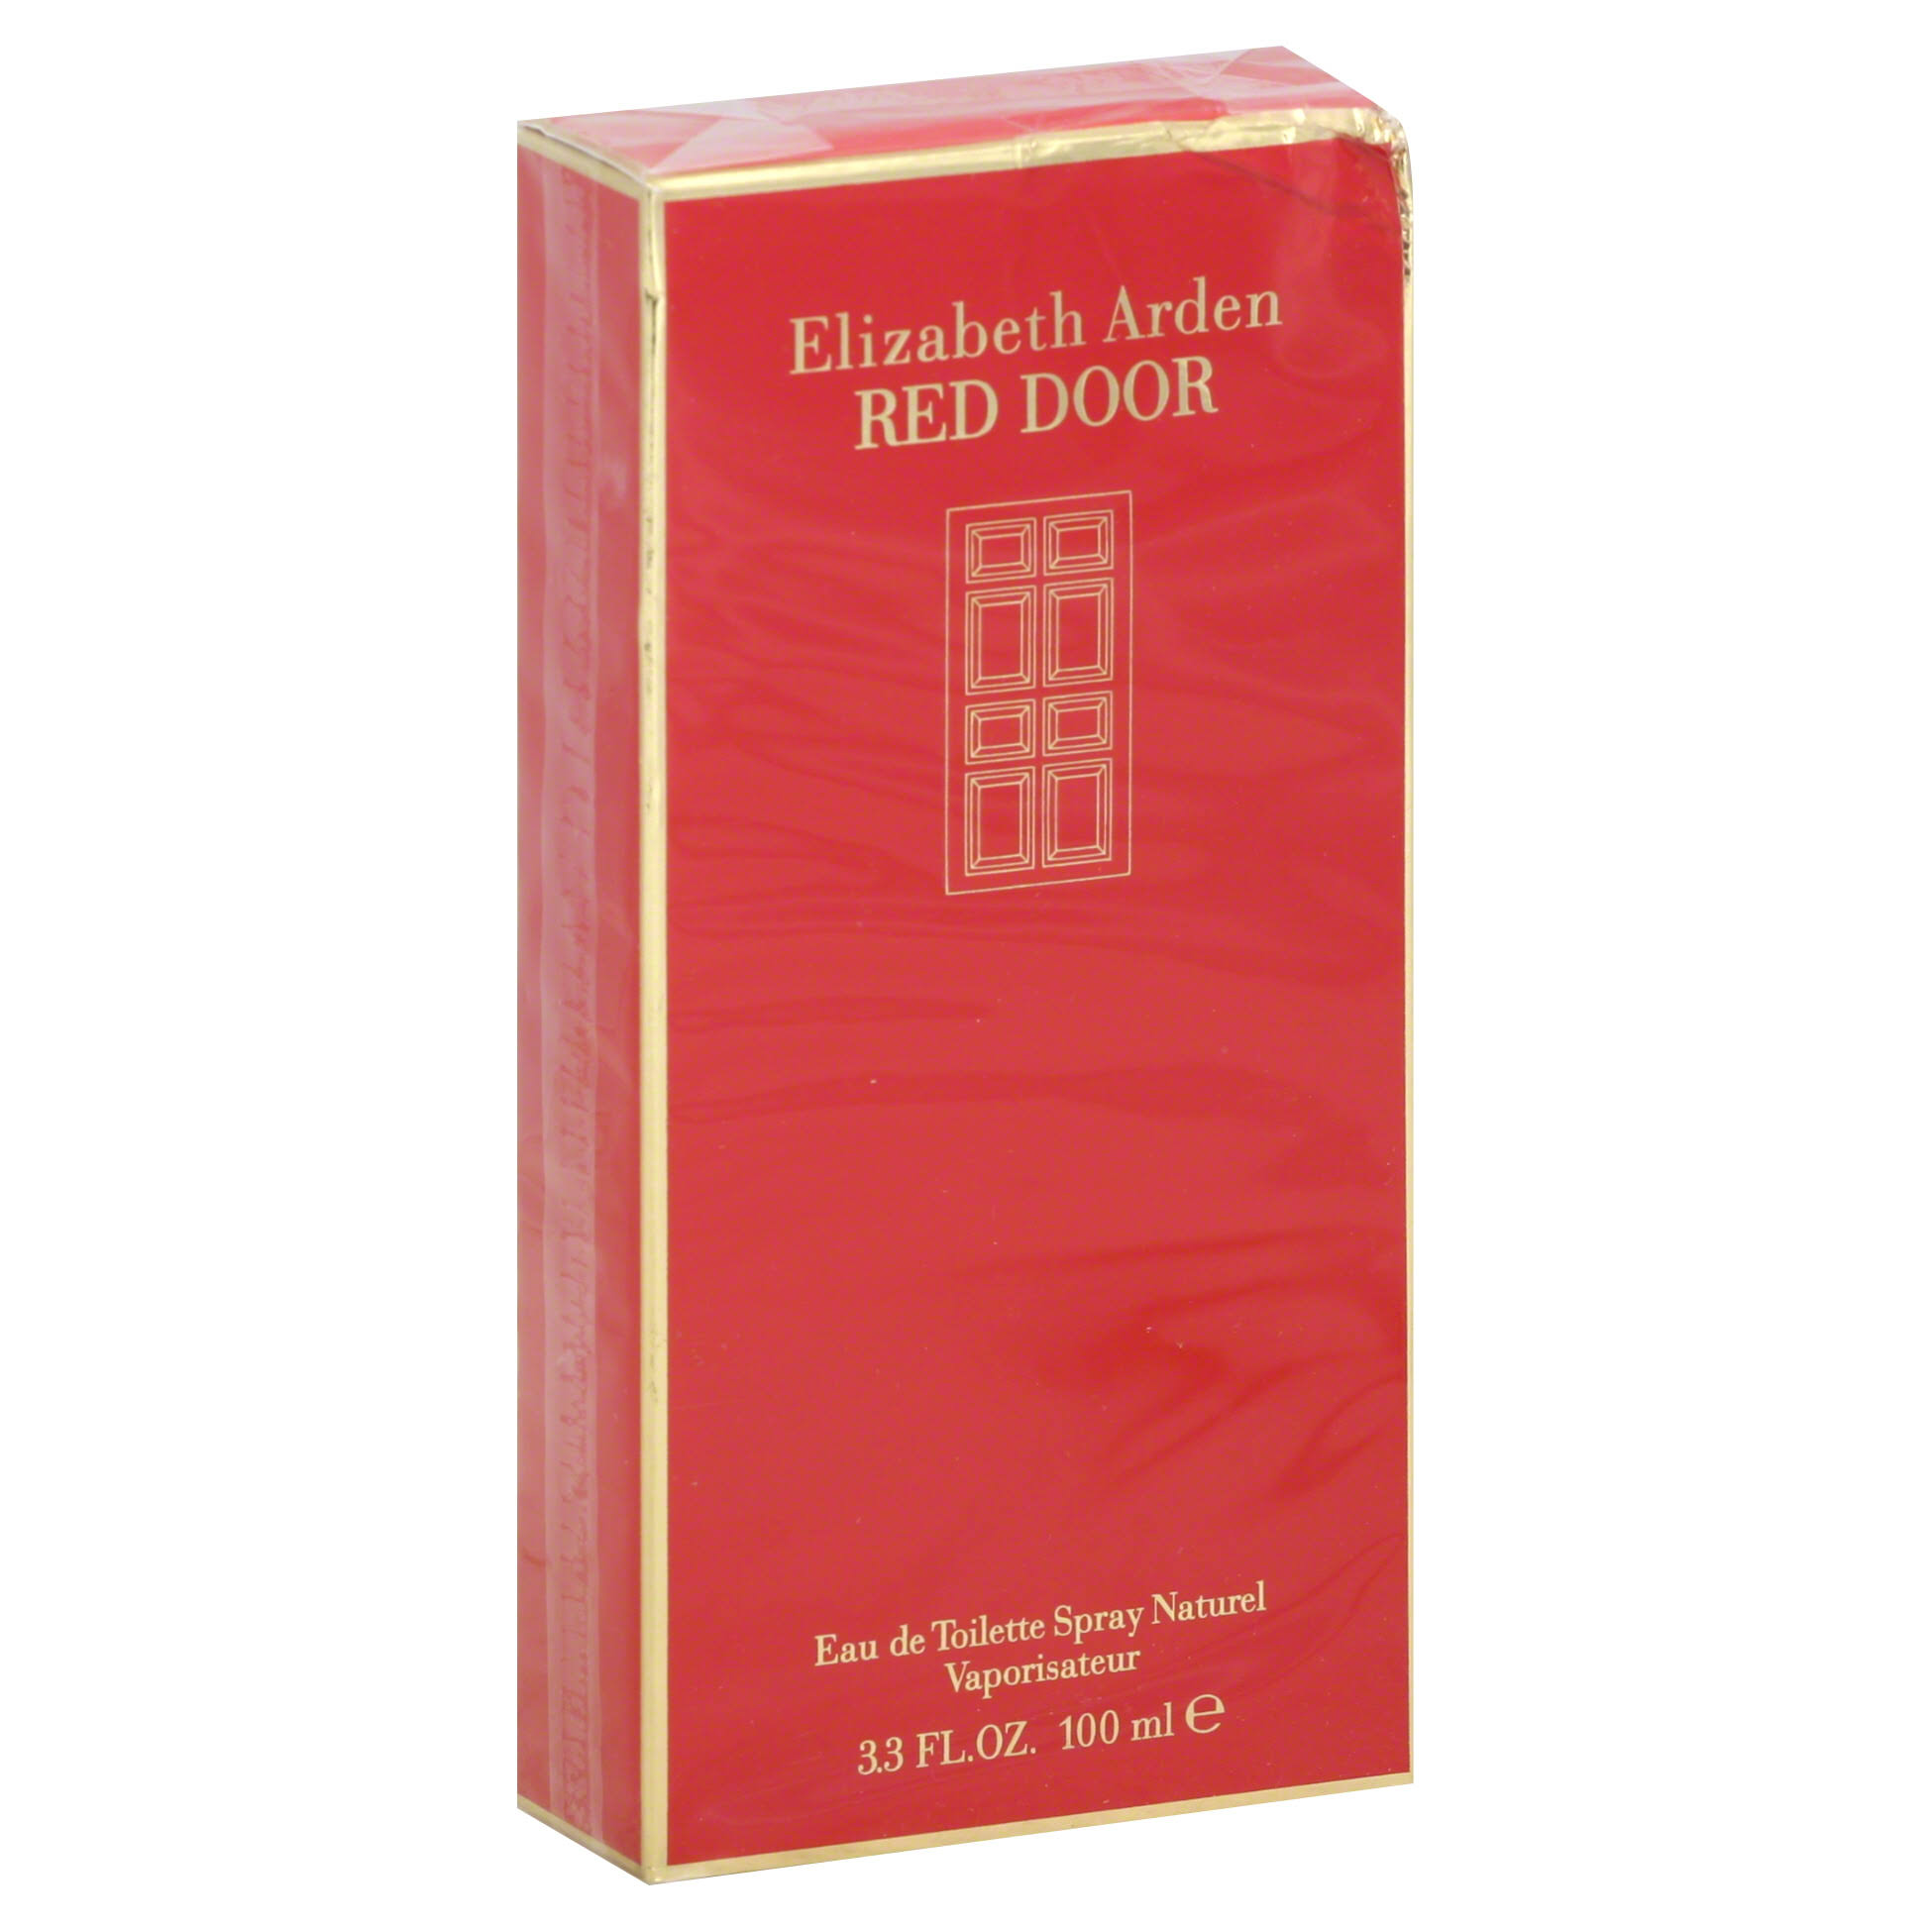 """Red Door"" by Elizabeth Arden for Women Eau de Toilette Spray"